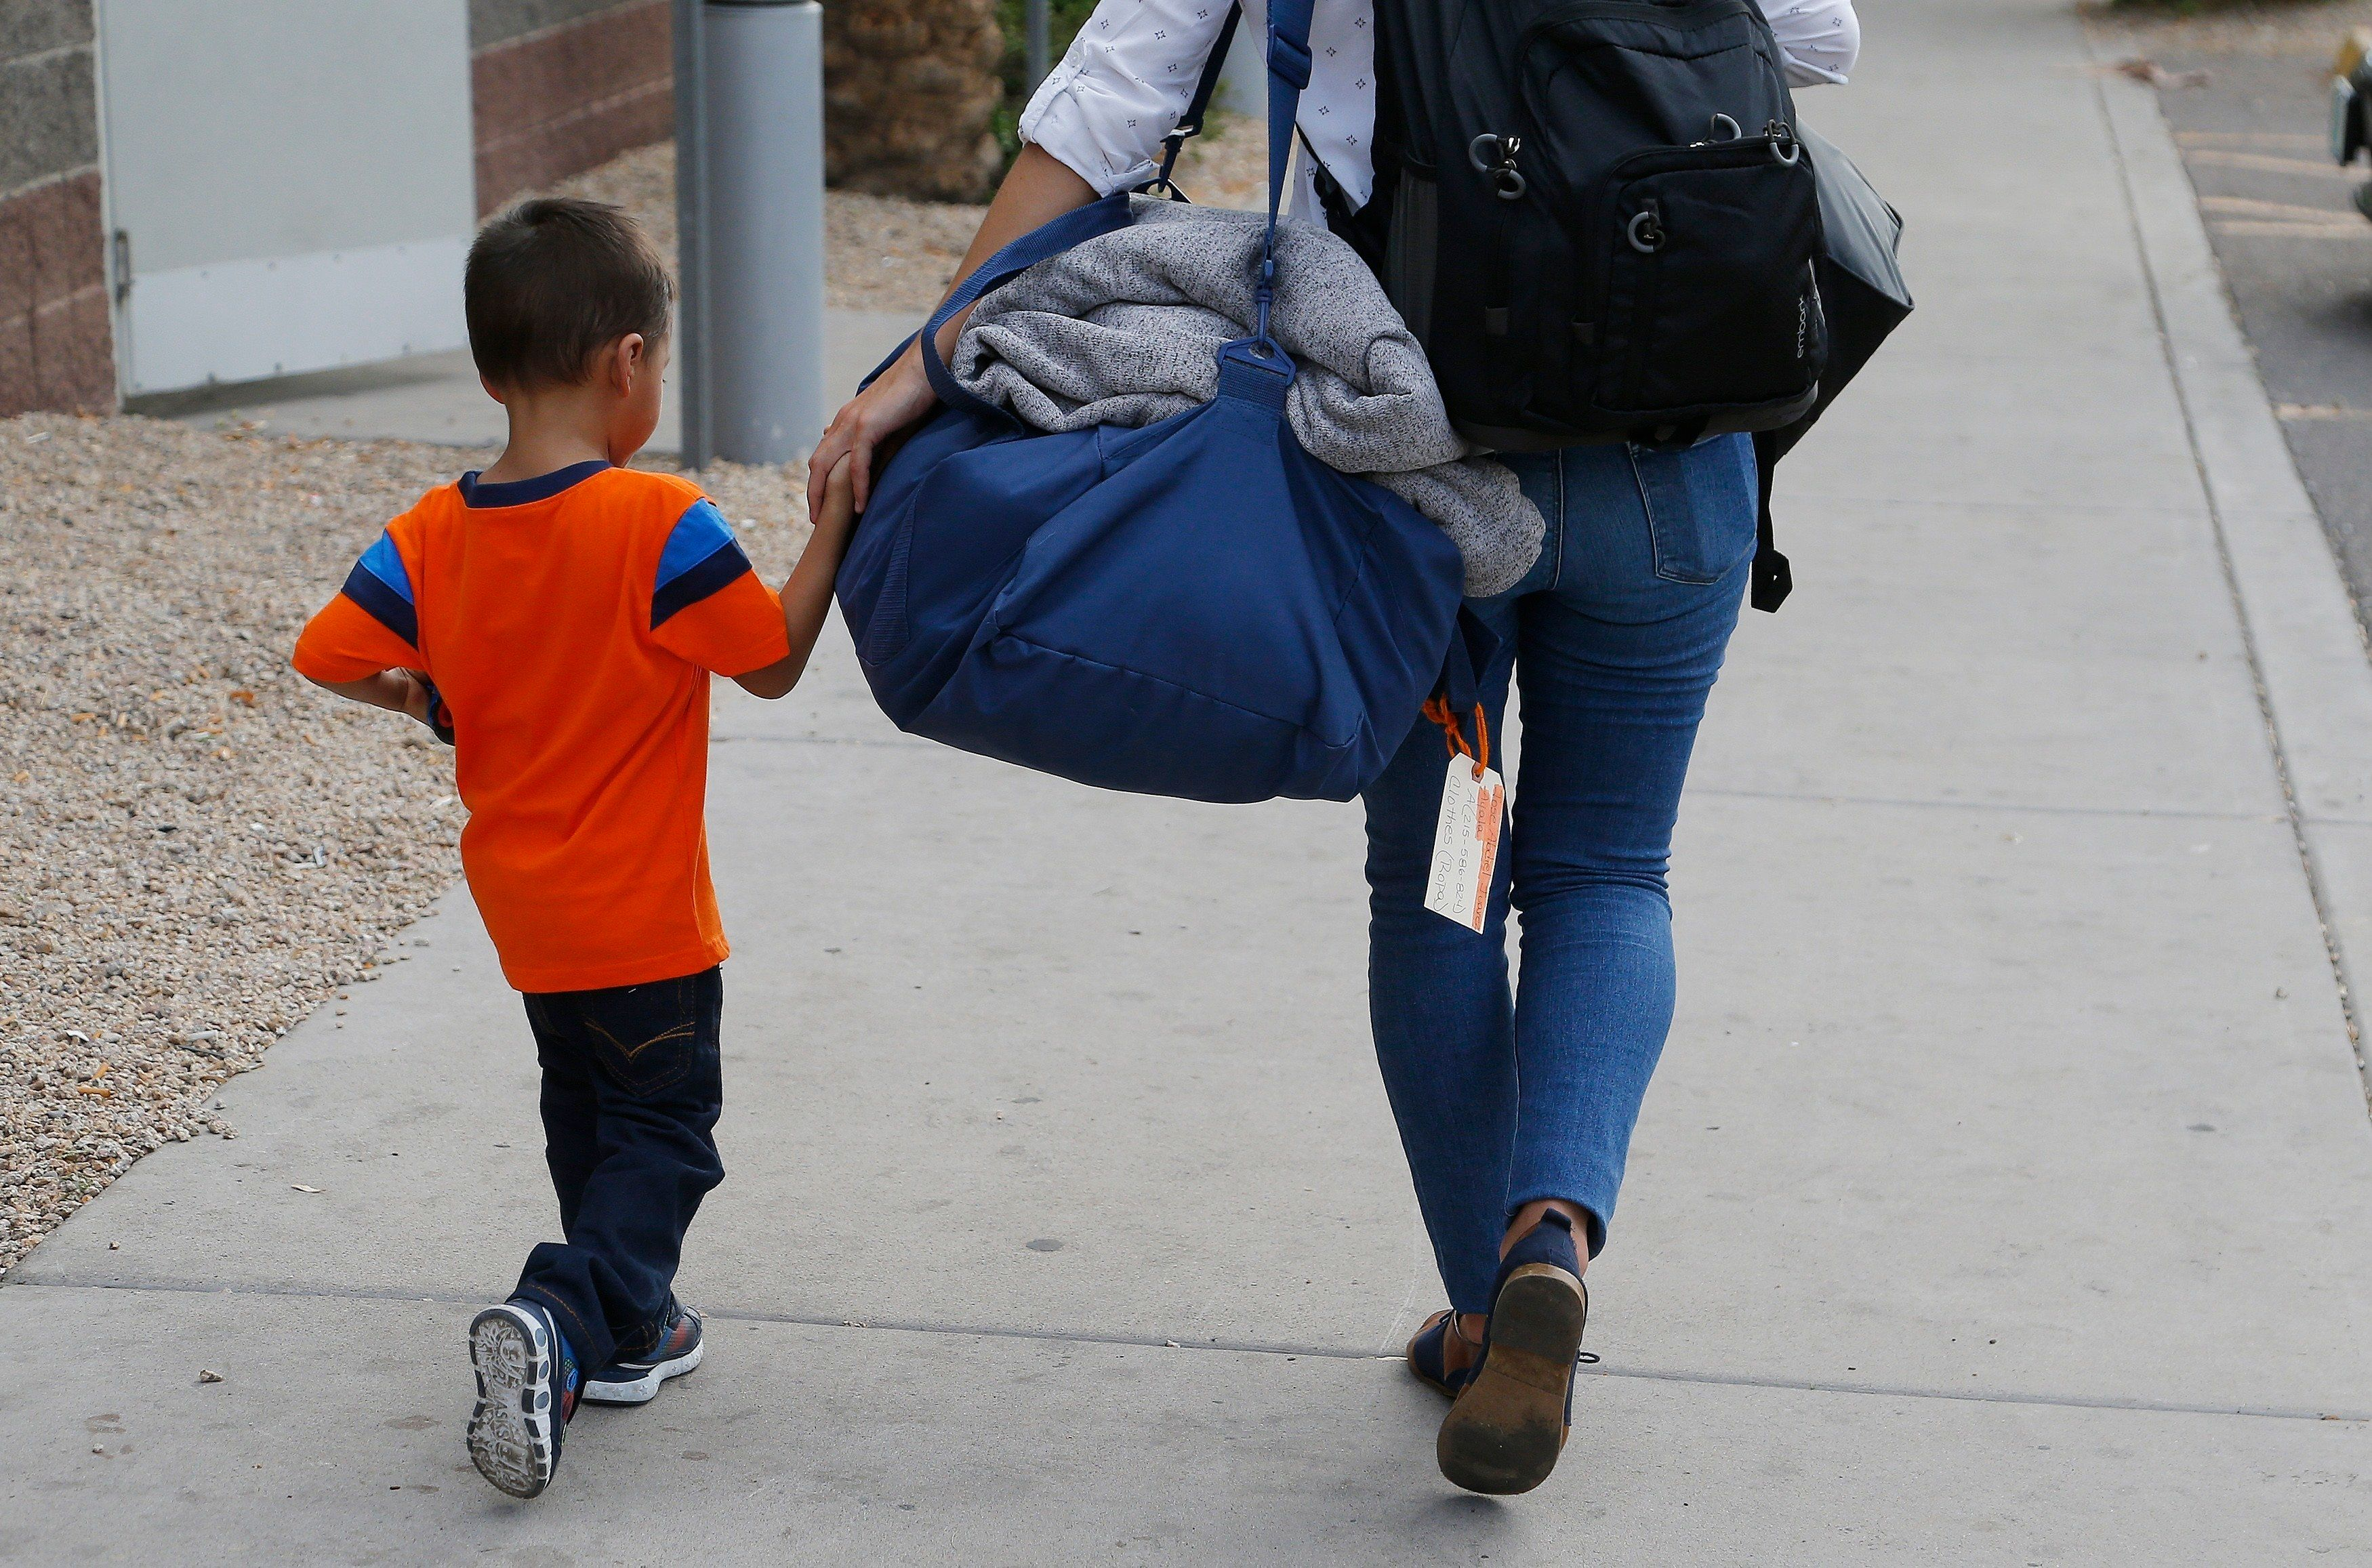 FILE - In this July 10, 2018, file photo, three-year-old Jose Jr., from Honduras, is helped by representative of the Southern Poverty Law Center as he is reunited with his father in Phoenix. The government's separation of families at the border, a consequence of a zero-tolerance policy that President Donald Trump's administration officially began in spring, drew worldwide outrage. (AP Photo/Ross D. Franklin, File)